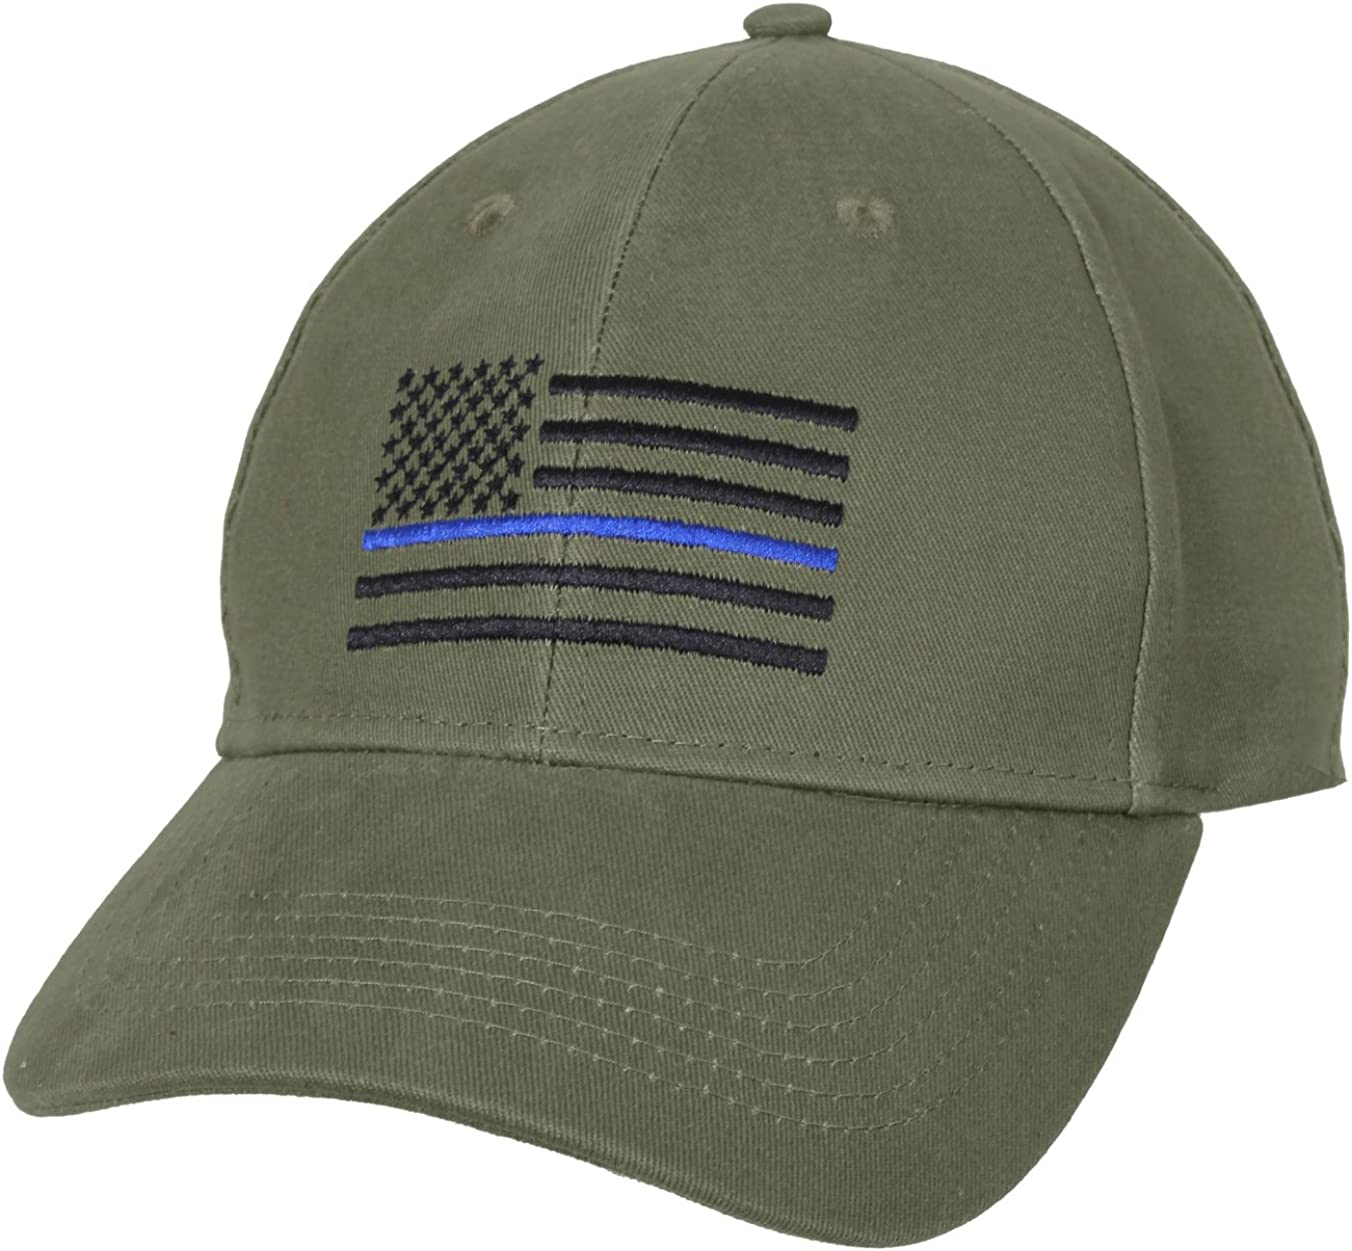 Olive Green USA Police Thin Blue Line Low Profile Hat Baseball Support Law